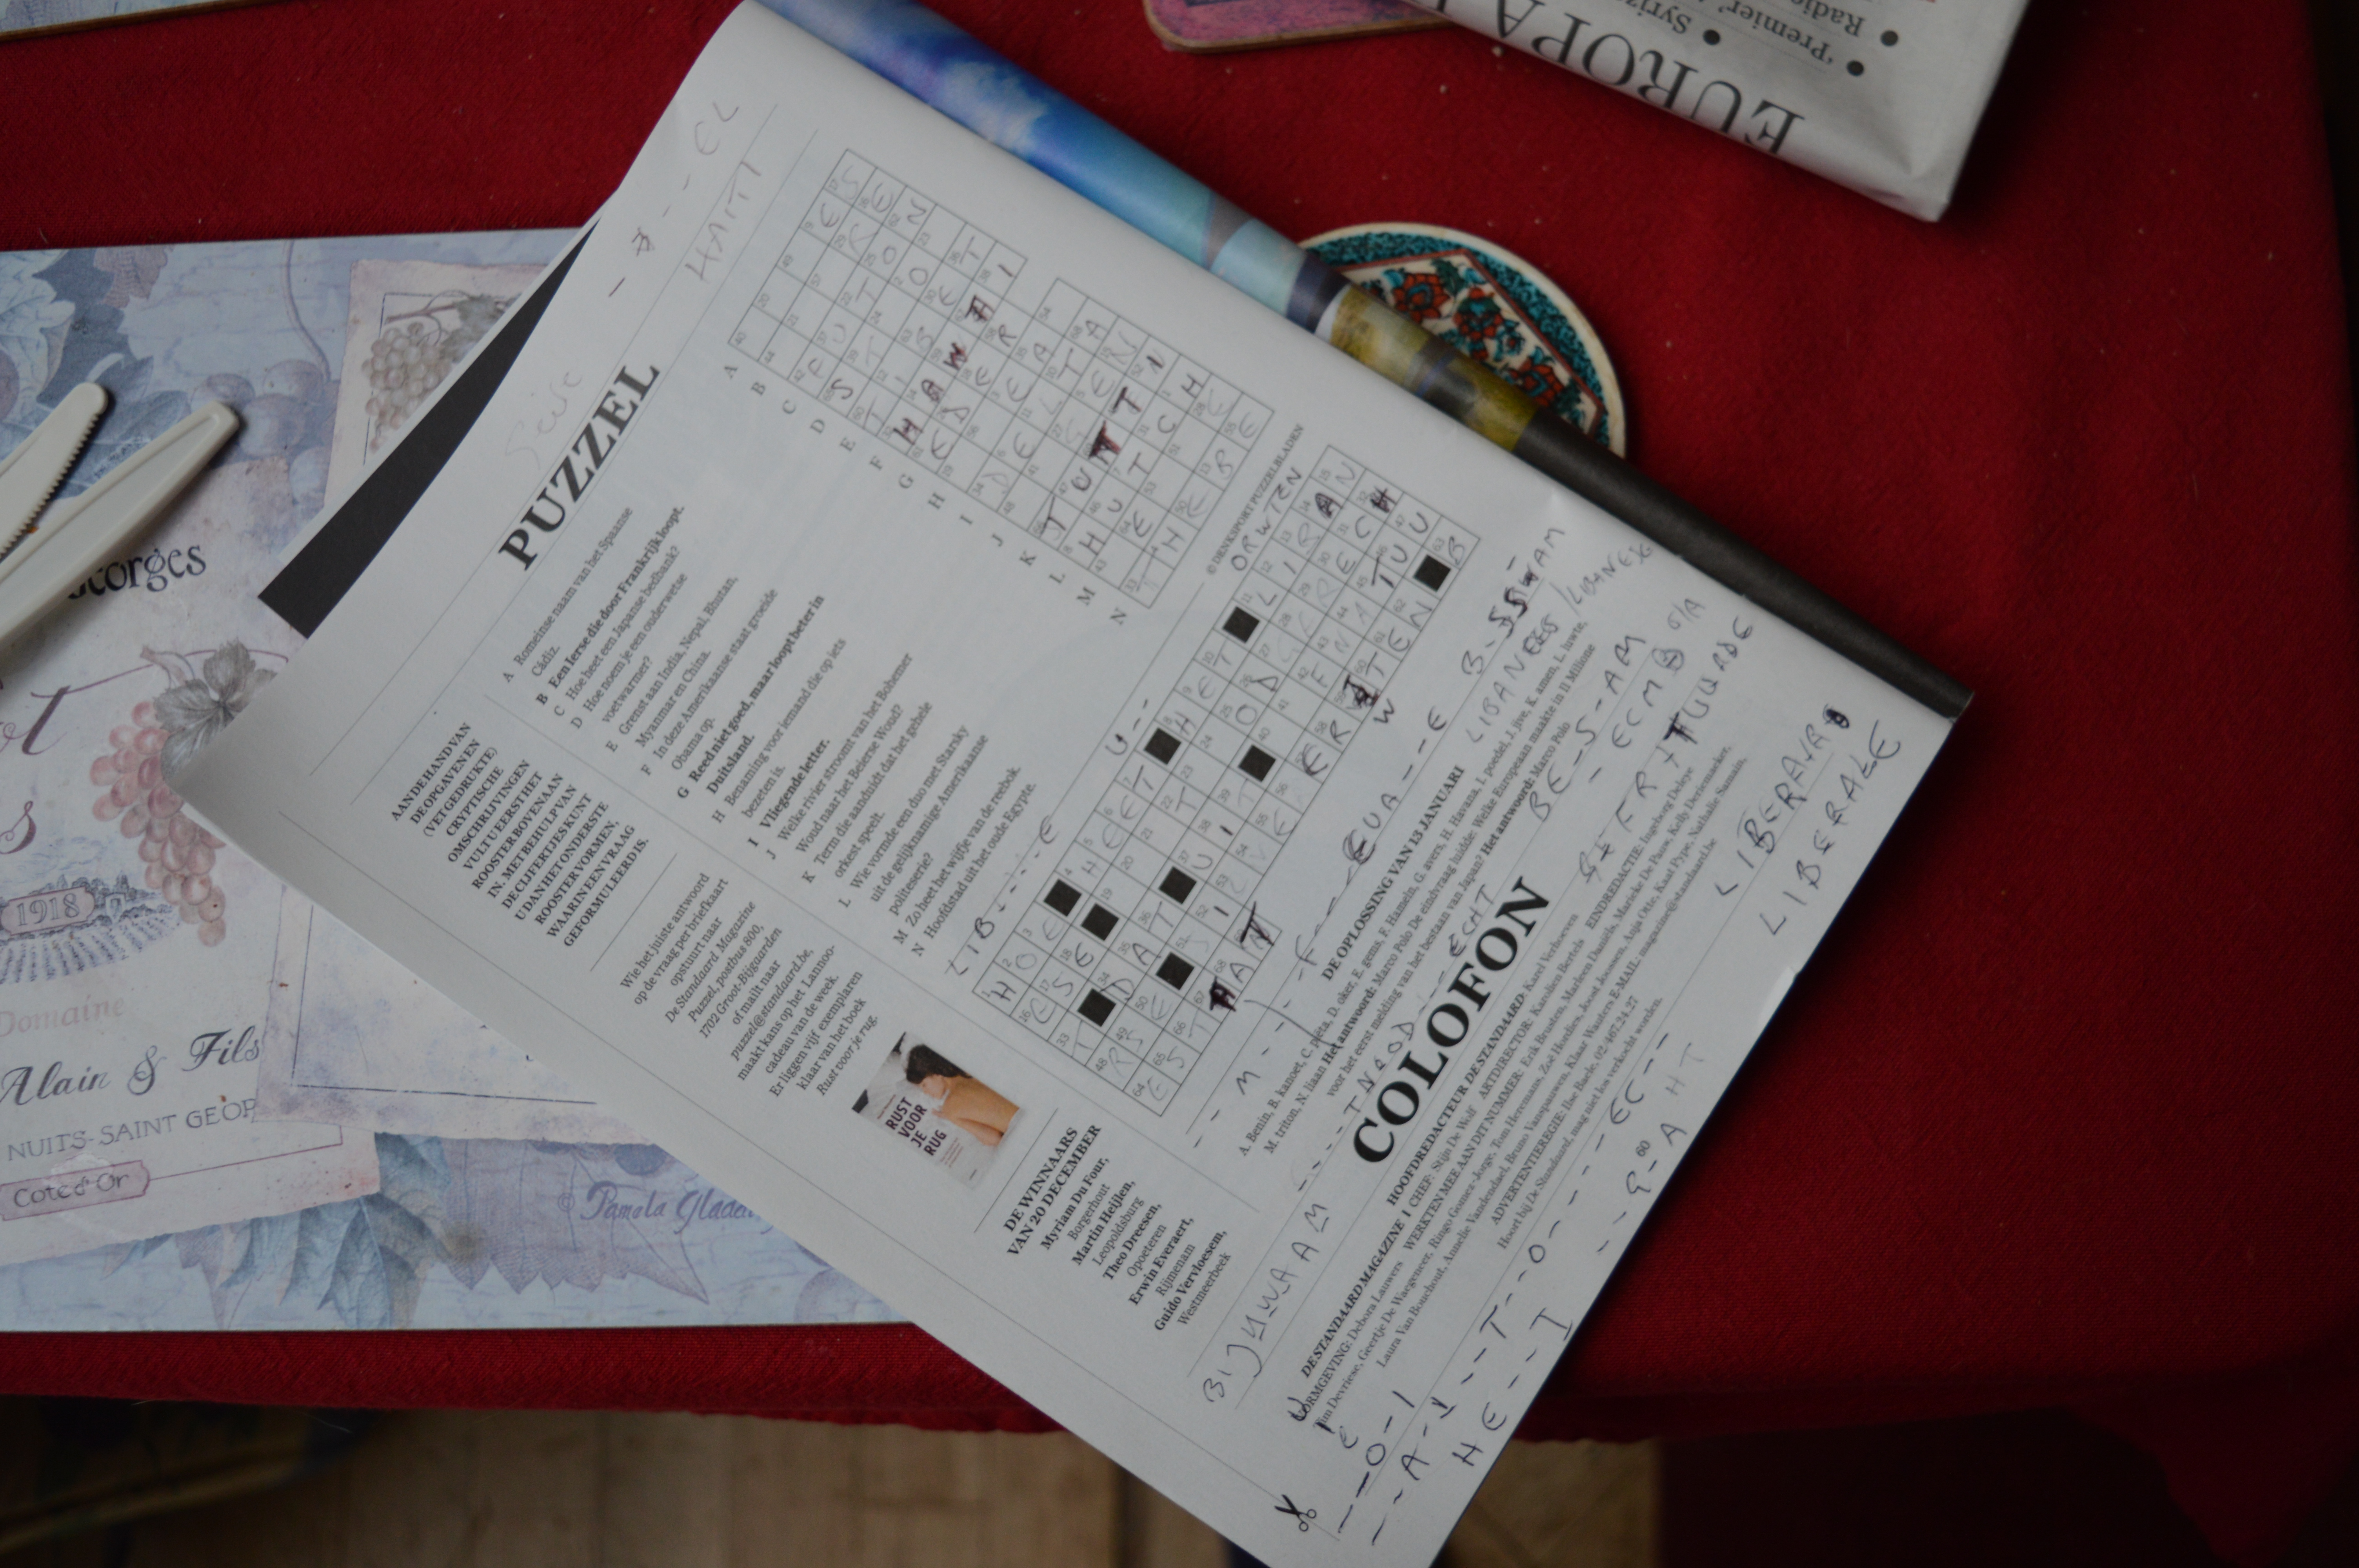 Making Connections with Belgian Crossword Puzzles